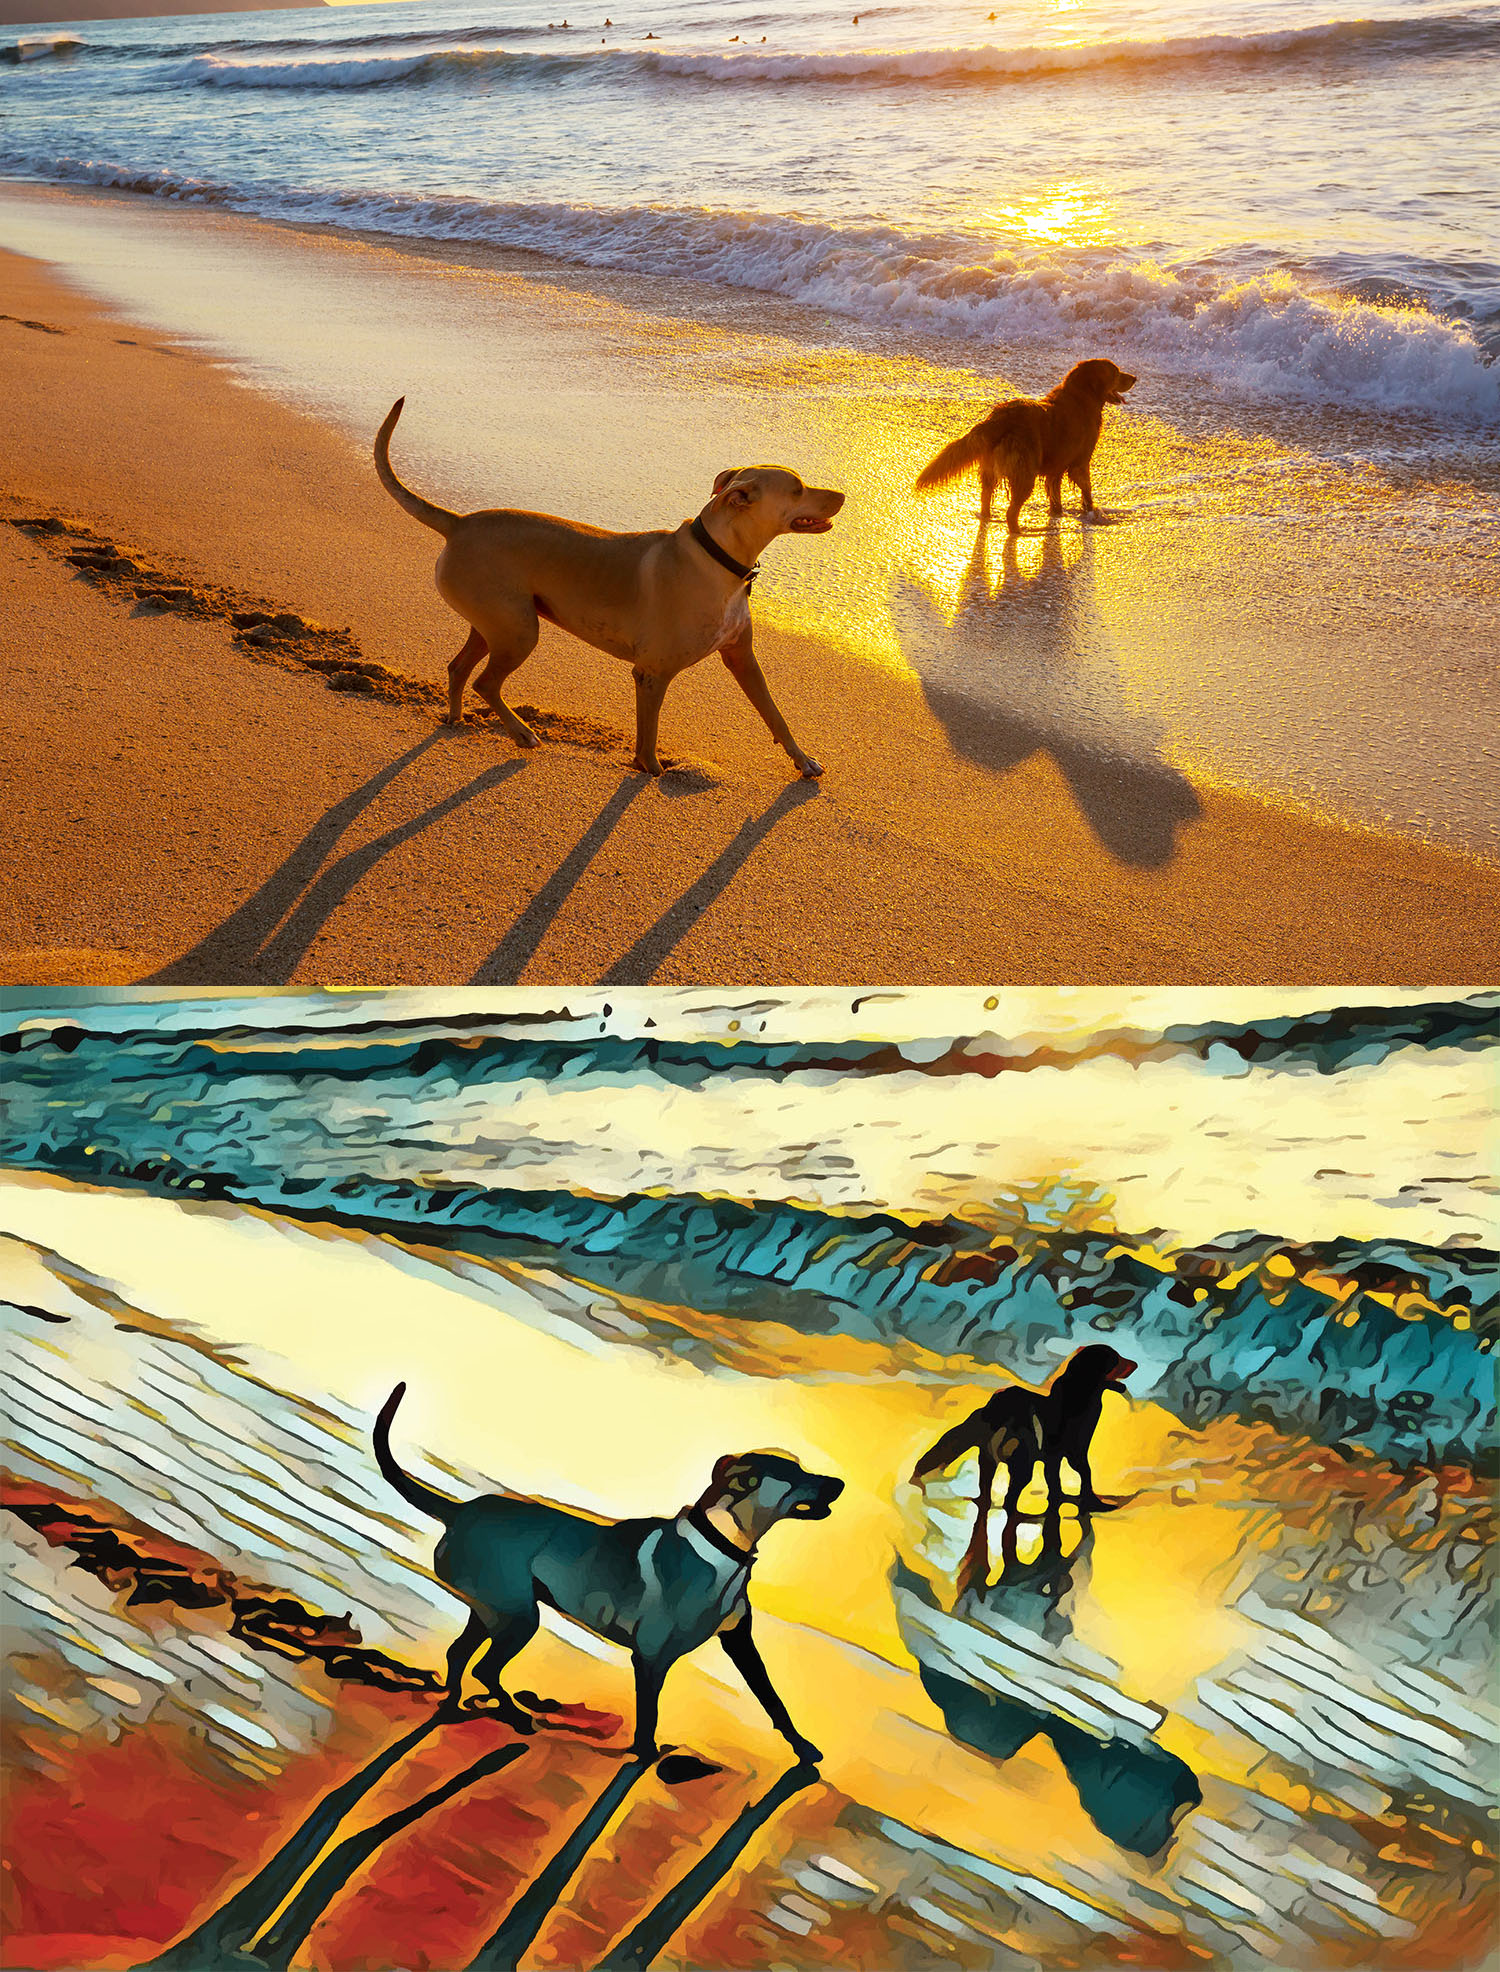 Before and after stylized image of two dogs playing in the surf at sunset